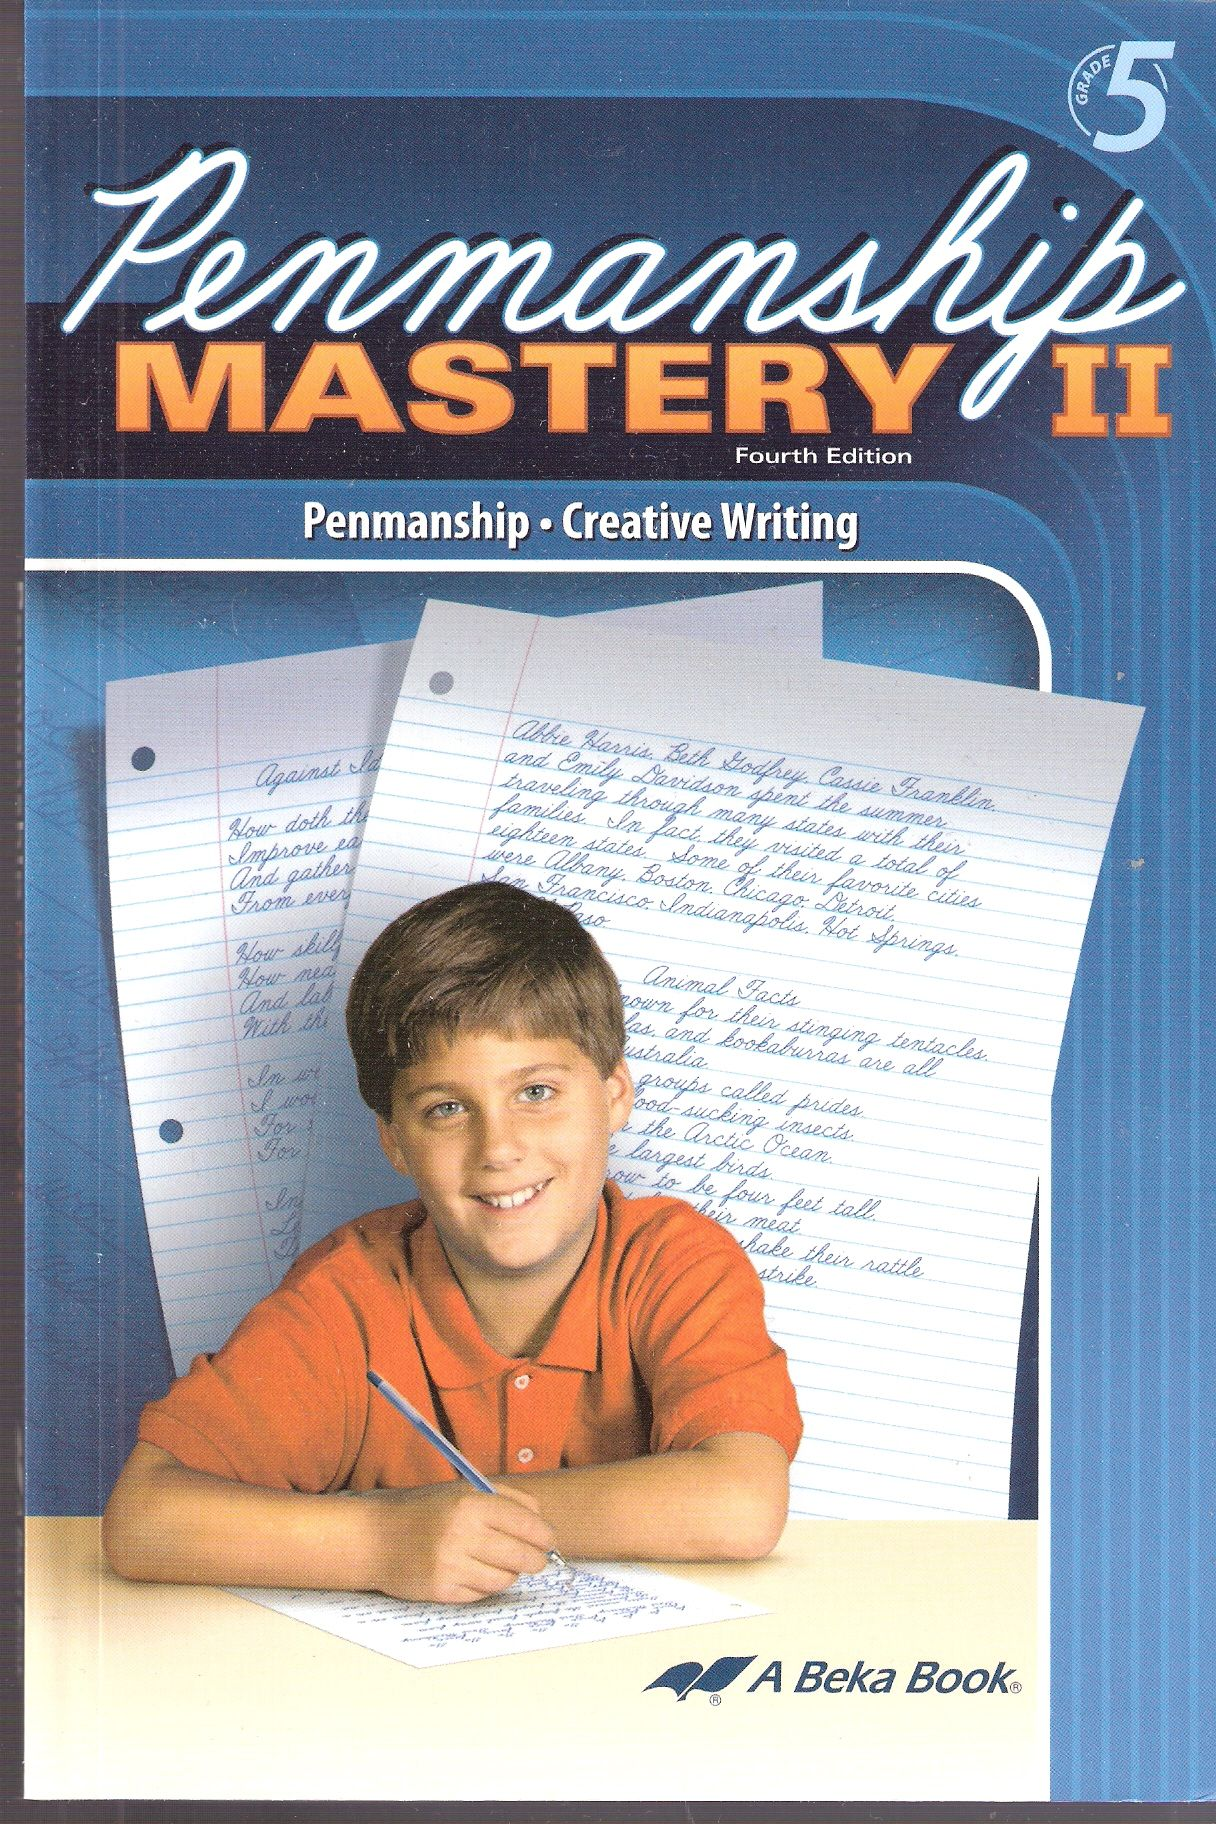 Abeka Penmanship Mastery 2 4th Edition Gives Instruction In Correct Formation Spacing Letter Size Slant Neatness W Abeka Penmanship Handwriting Analysis [ 1824 x 1216 Pixel ]